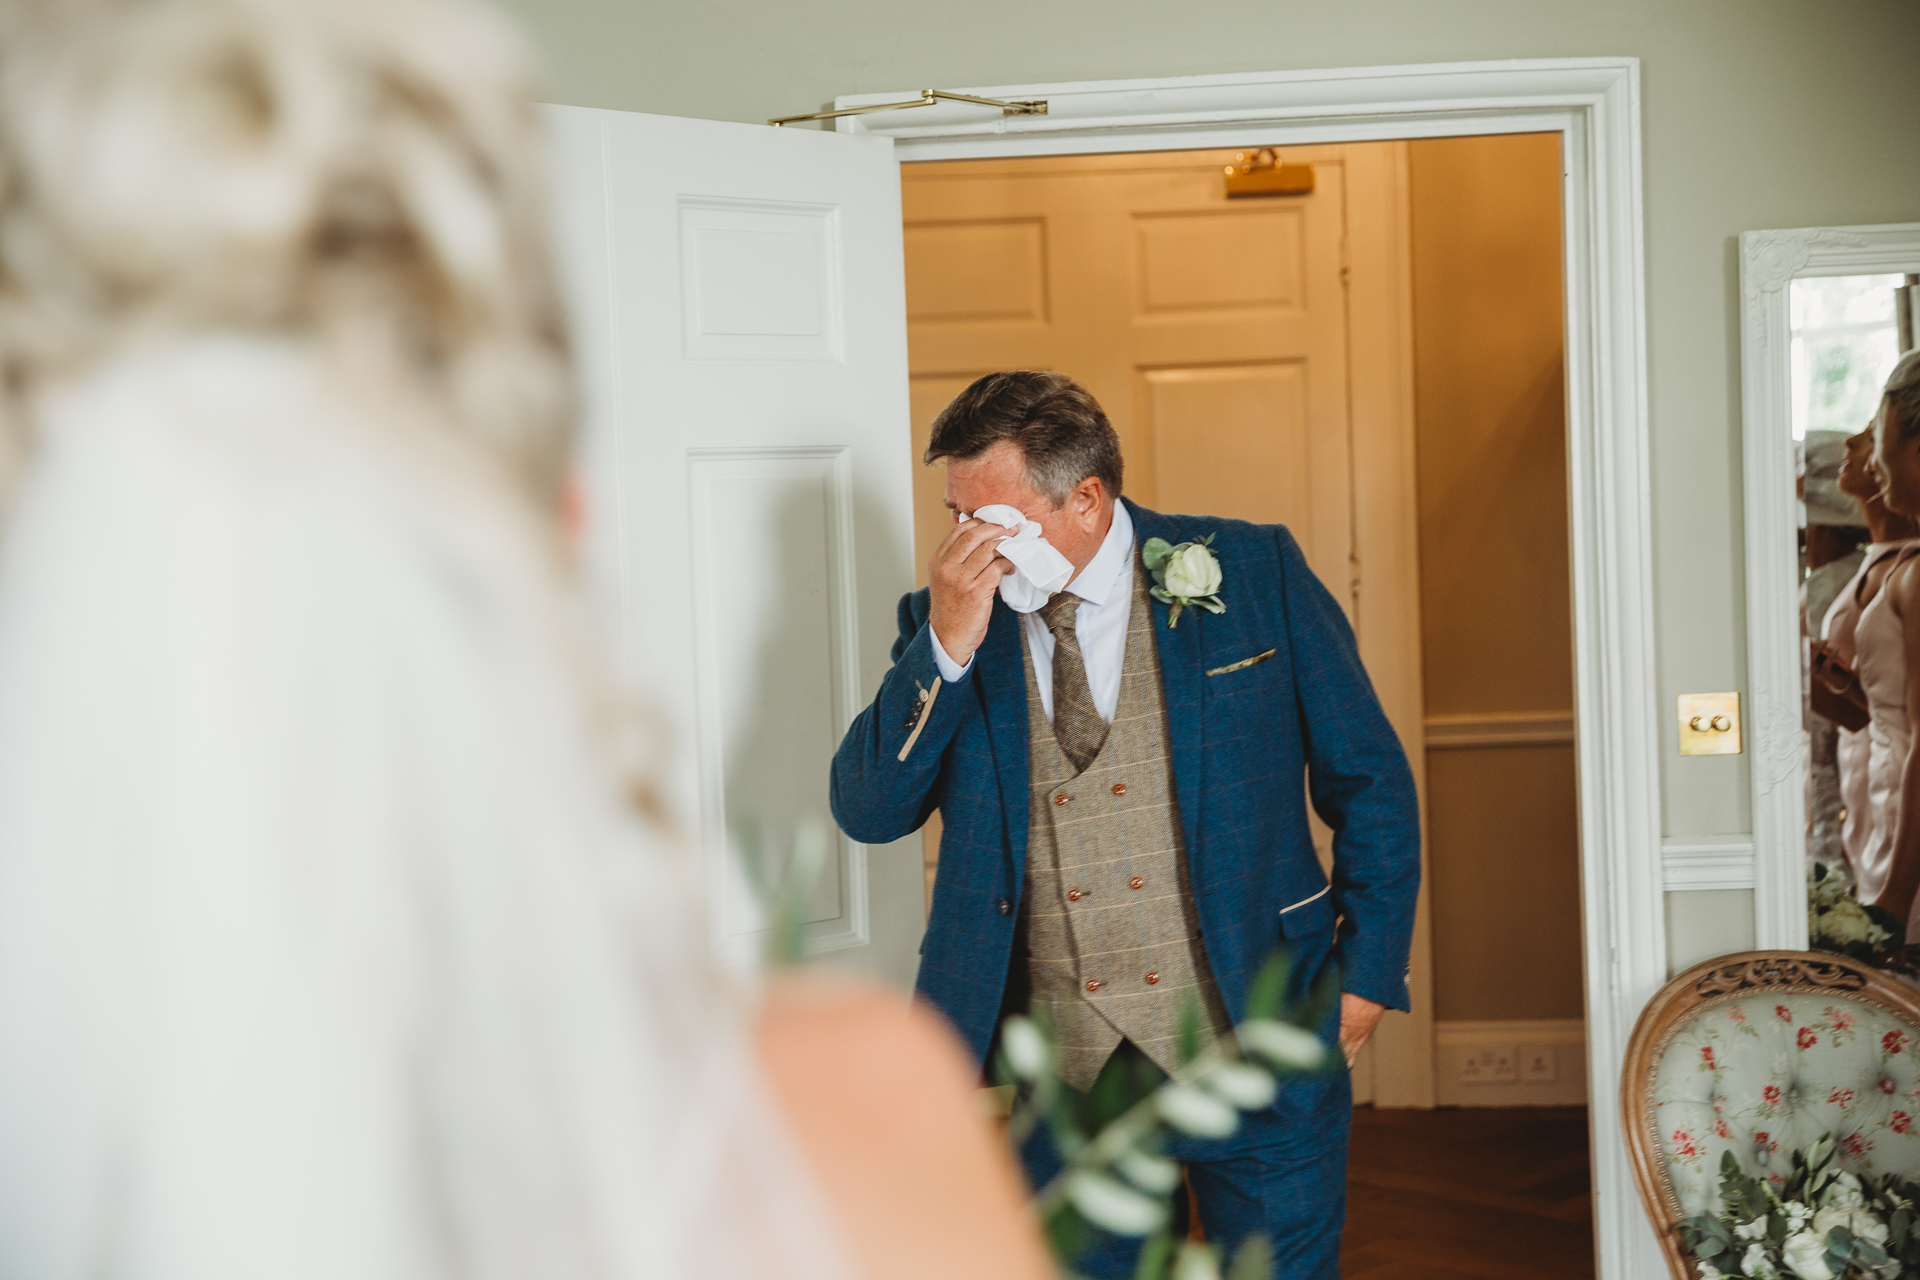 father of the bride entering room and seeing bride, crying